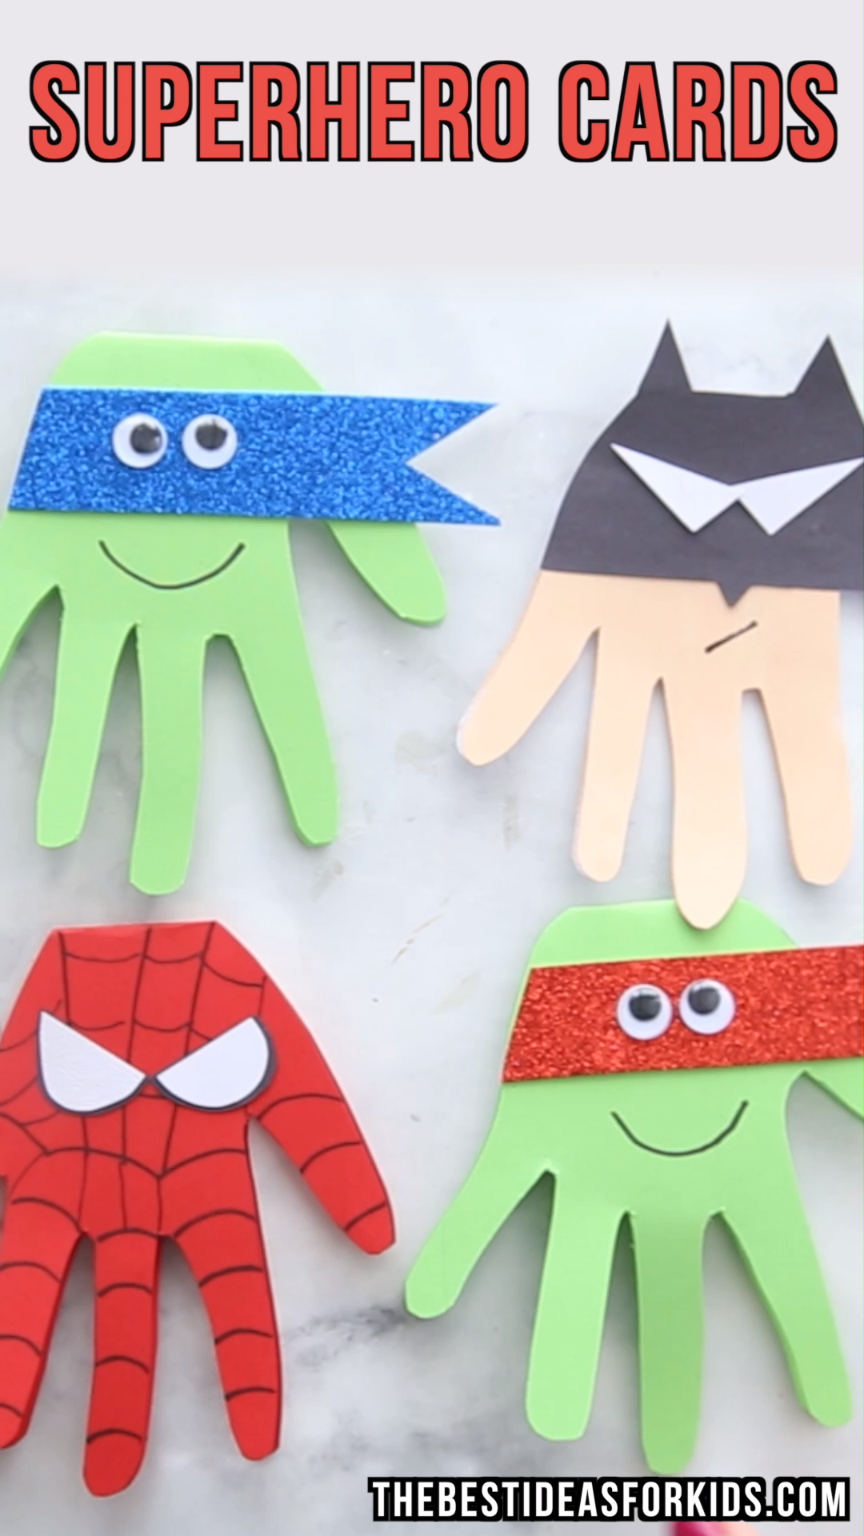 Superhero Craft - Superhero Handprints #superherocrafts